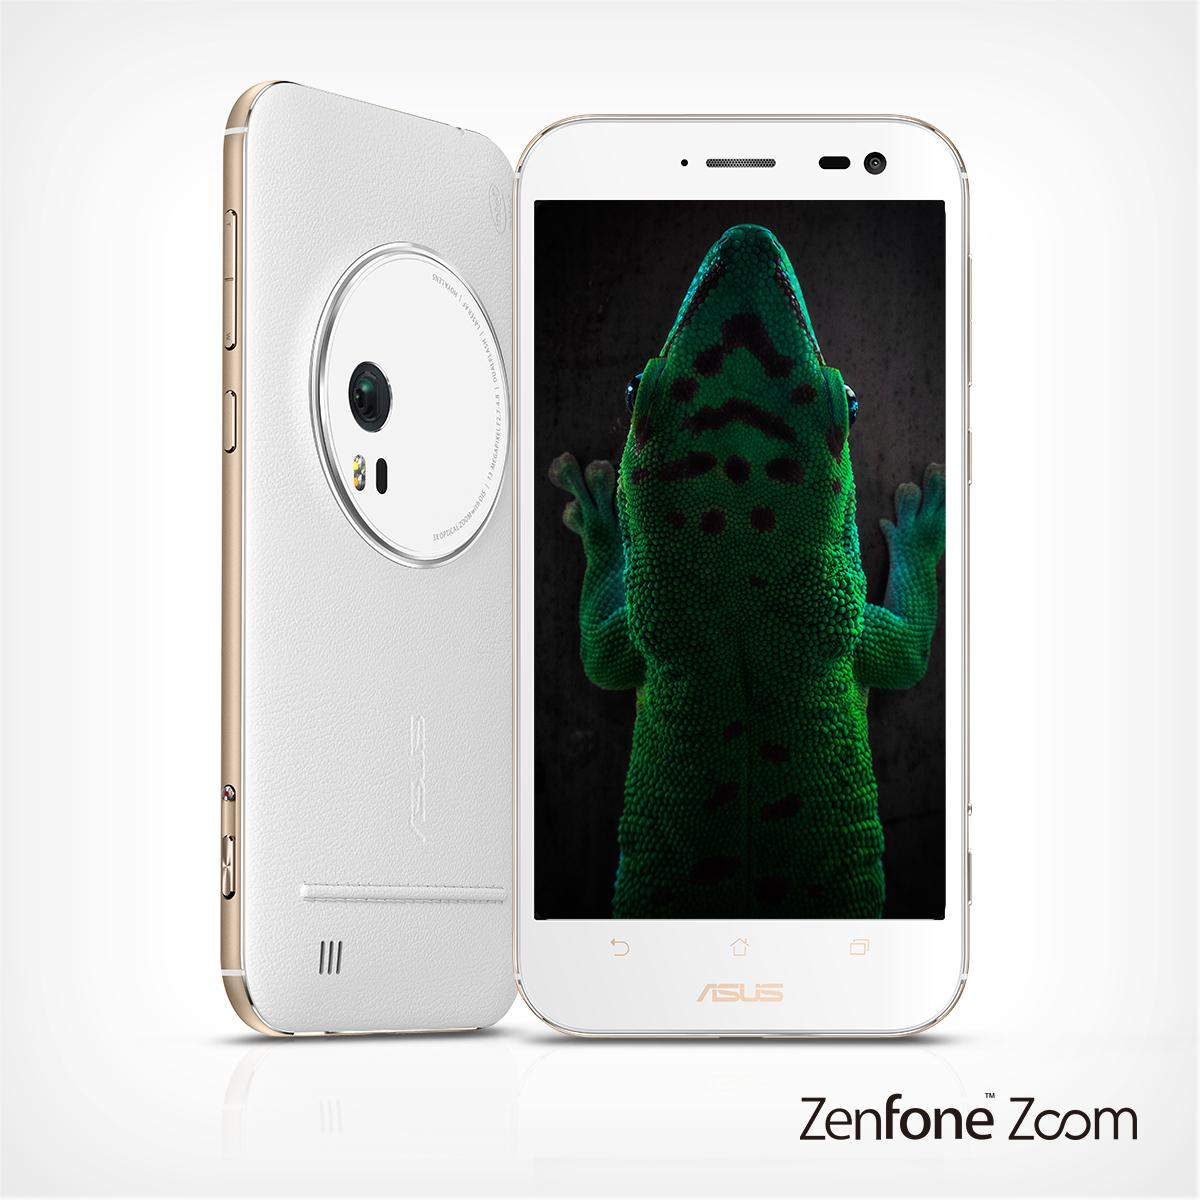 asus zenfone zoom 5 5 4gb ram 64gb storage unlocked cell phone us warranty. Black Bedroom Furniture Sets. Home Design Ideas